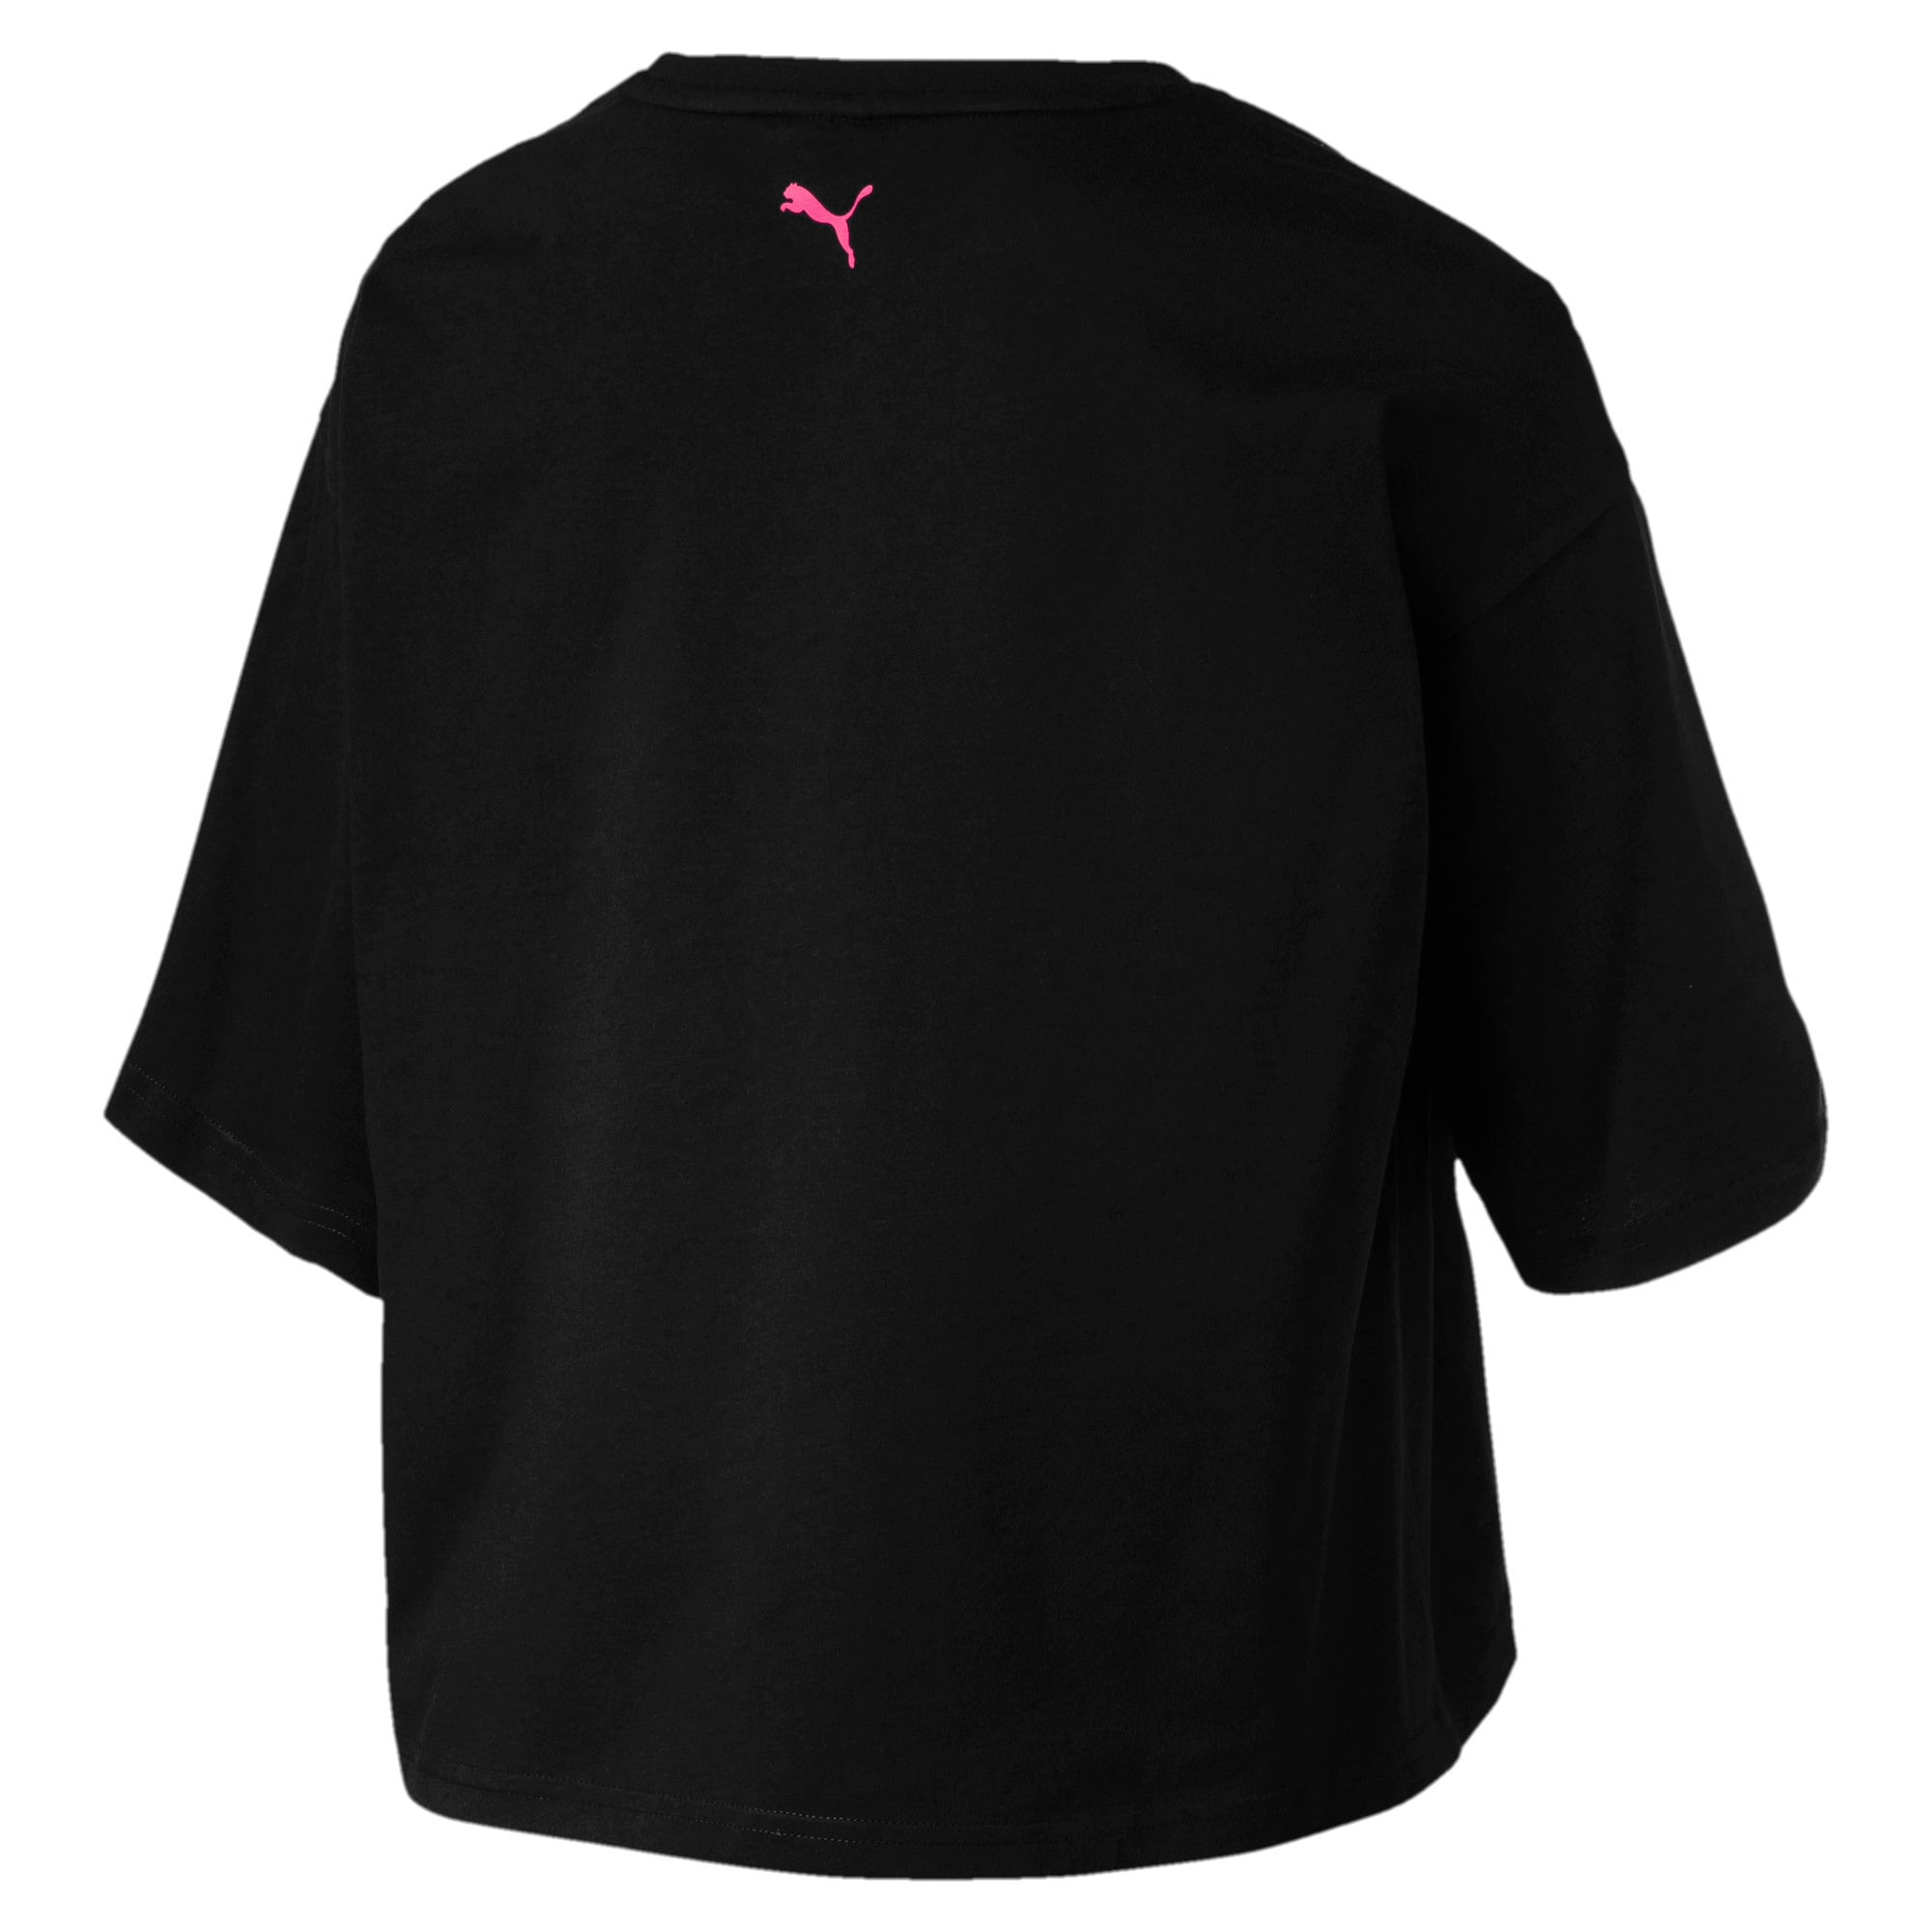 Thumbnail 5 of Trailblazer Women's Tee, Cotton Black, medium